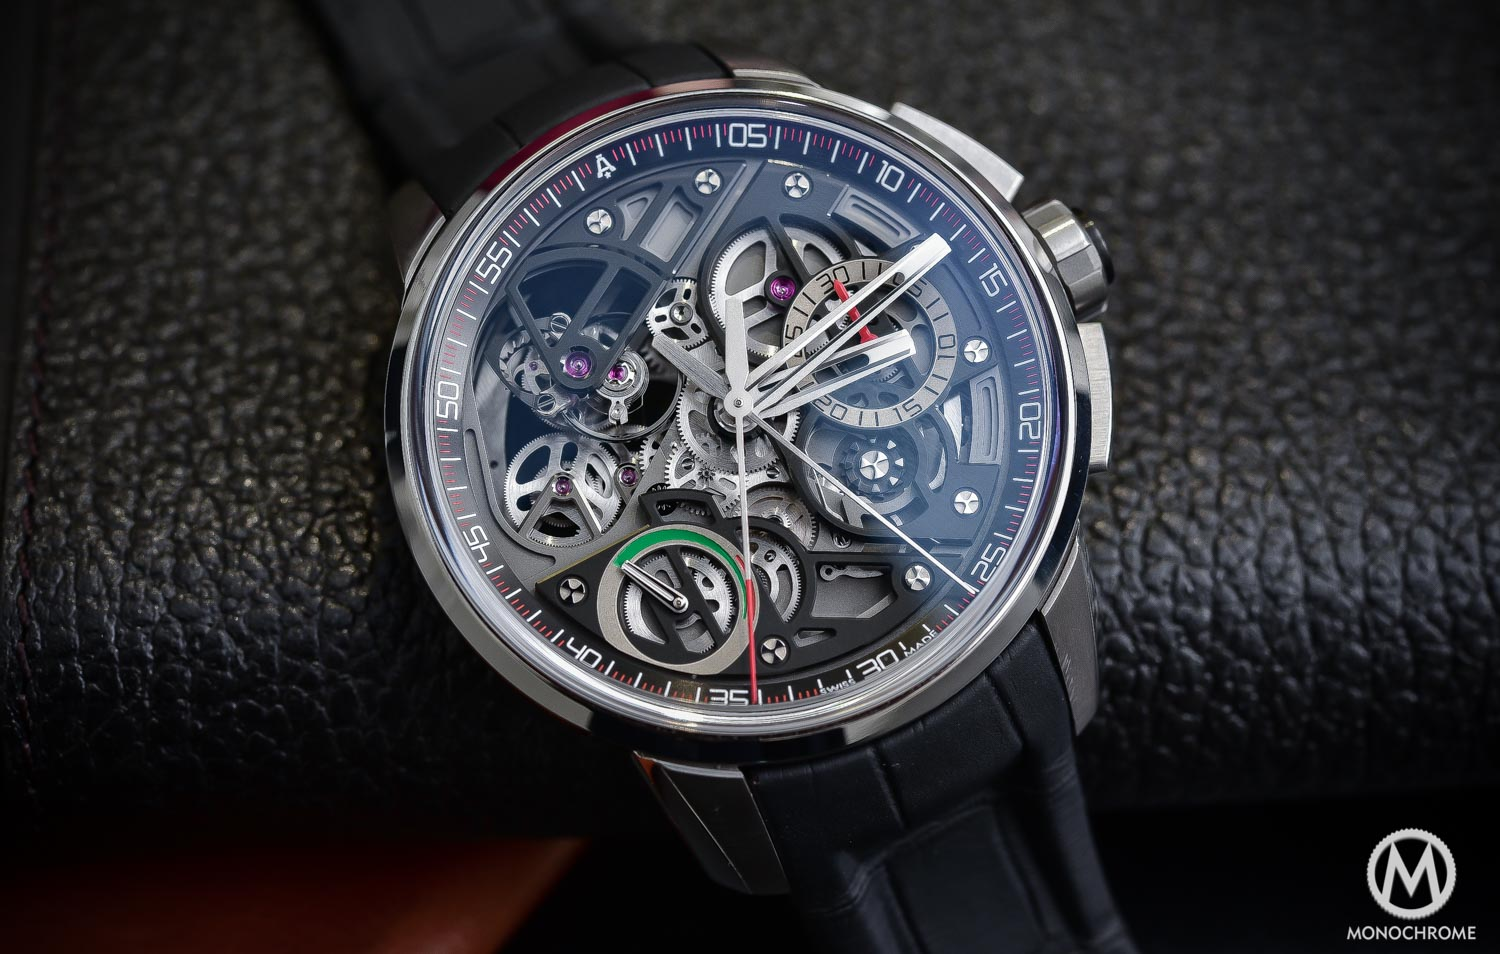 Top 5 Watches from Baselworld 2016 - Angelus U30 Rattrapante Tourbillon - Top 5 From Baselworld 2016 Frank - 1